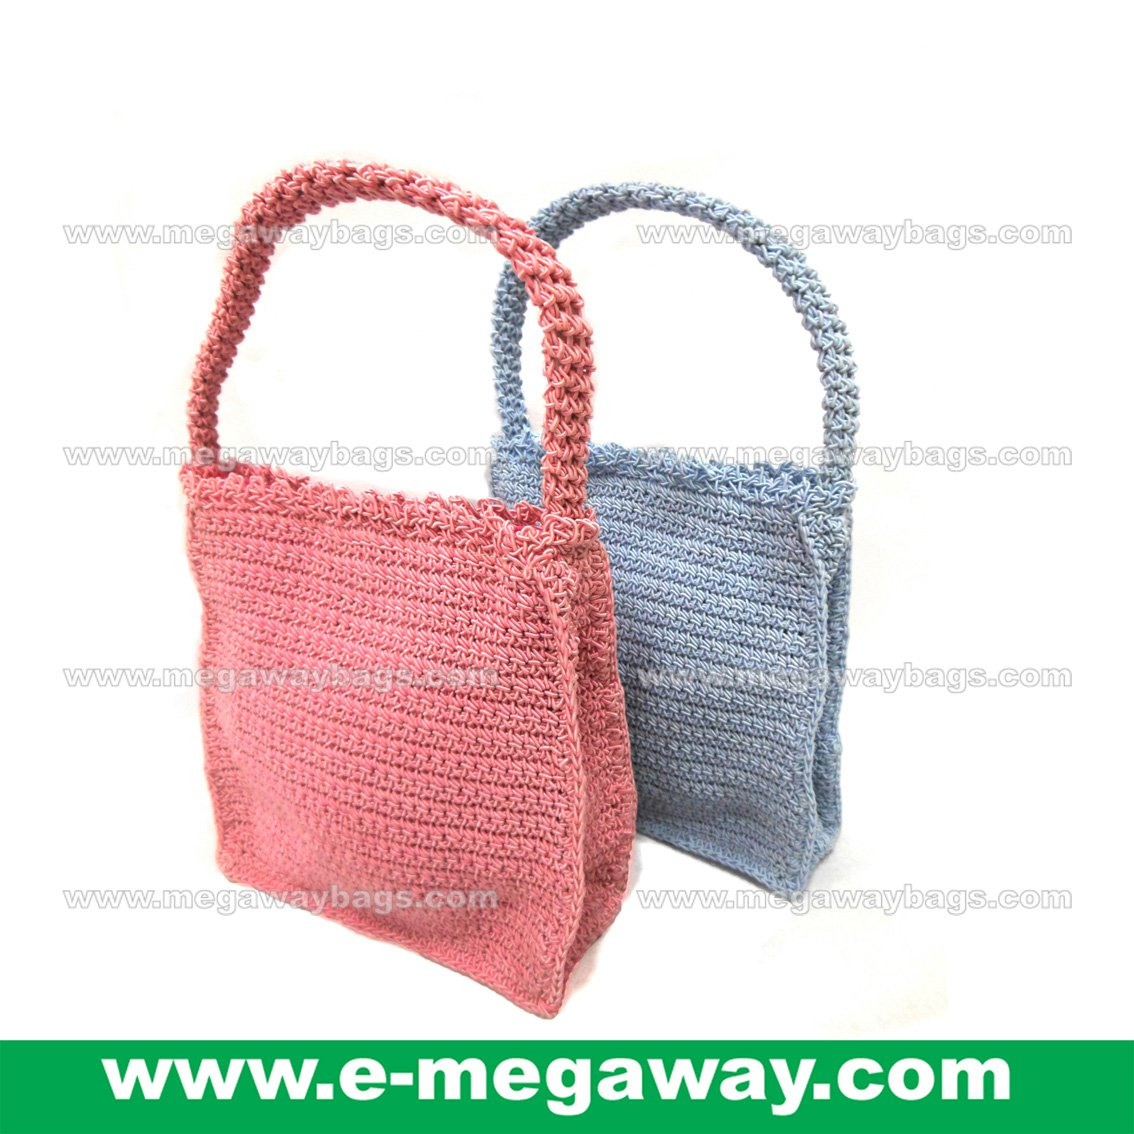 Mini Crochet Bags Straw Knitted Crafts Tote Handbags Taschen Purses MegawayBags #CC-1044A